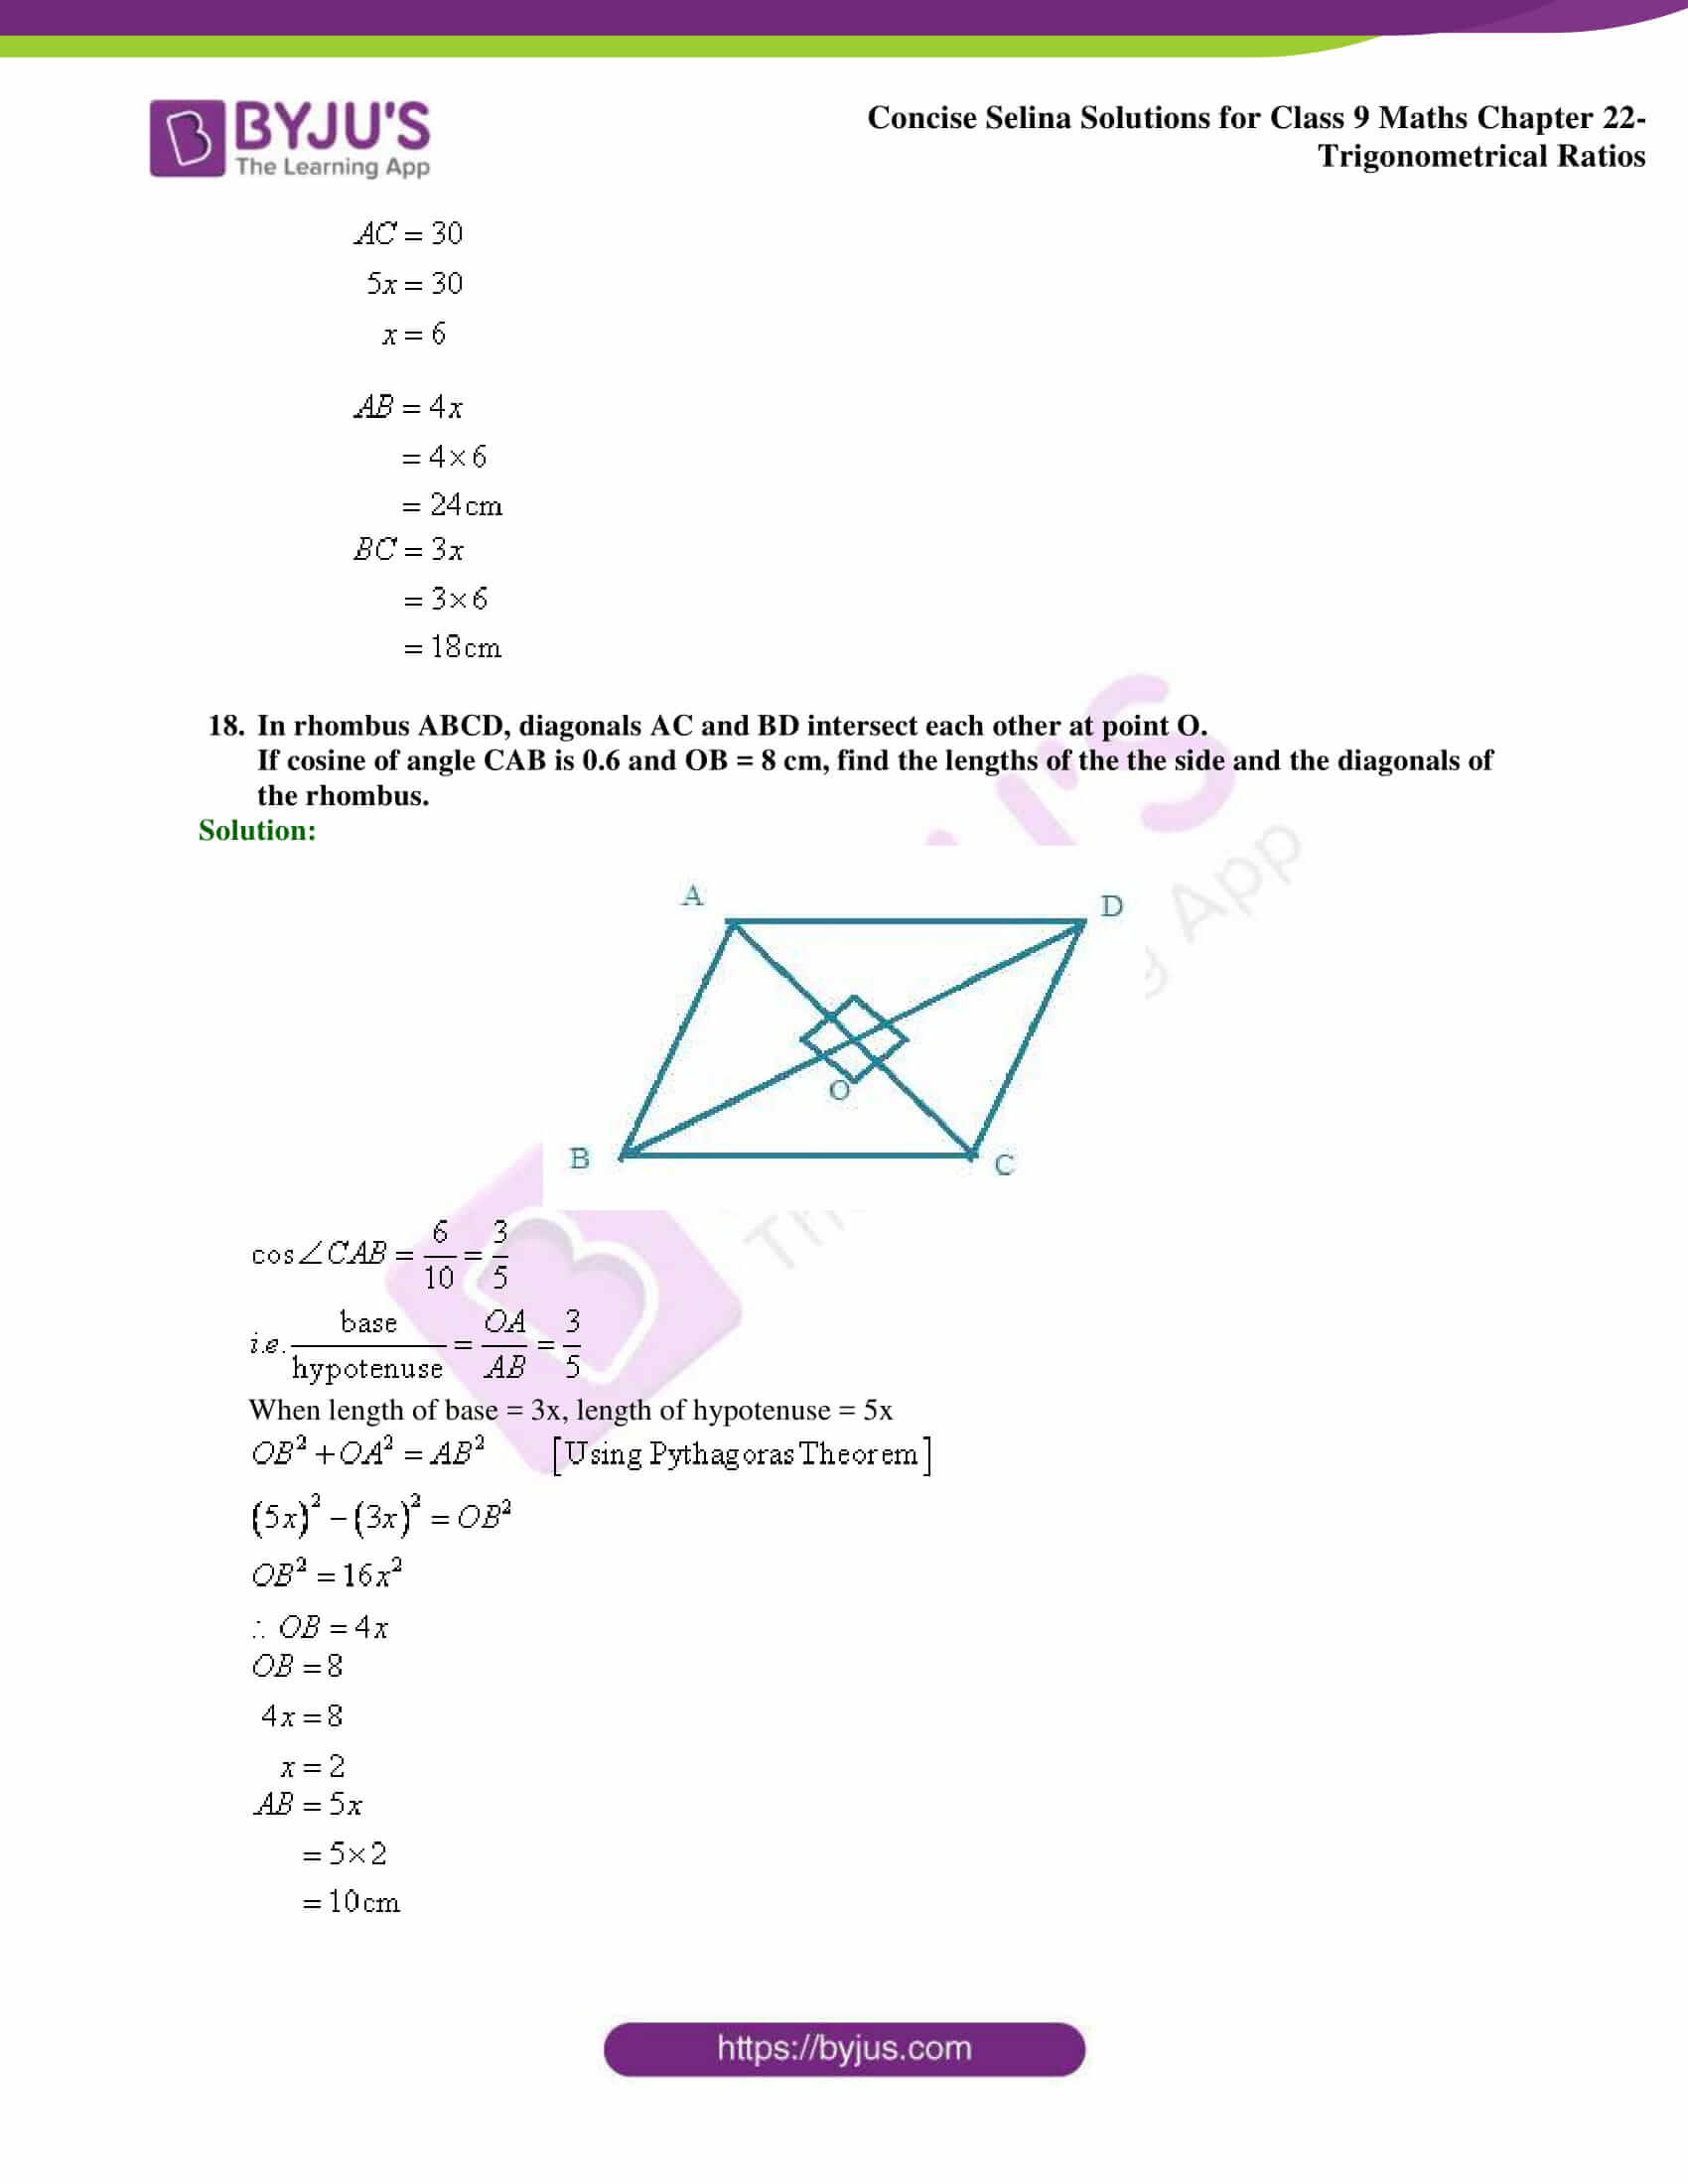 Concise Selina Solutions Class 9 Maths Chapter 22 Trigonometrical Ratios part 39